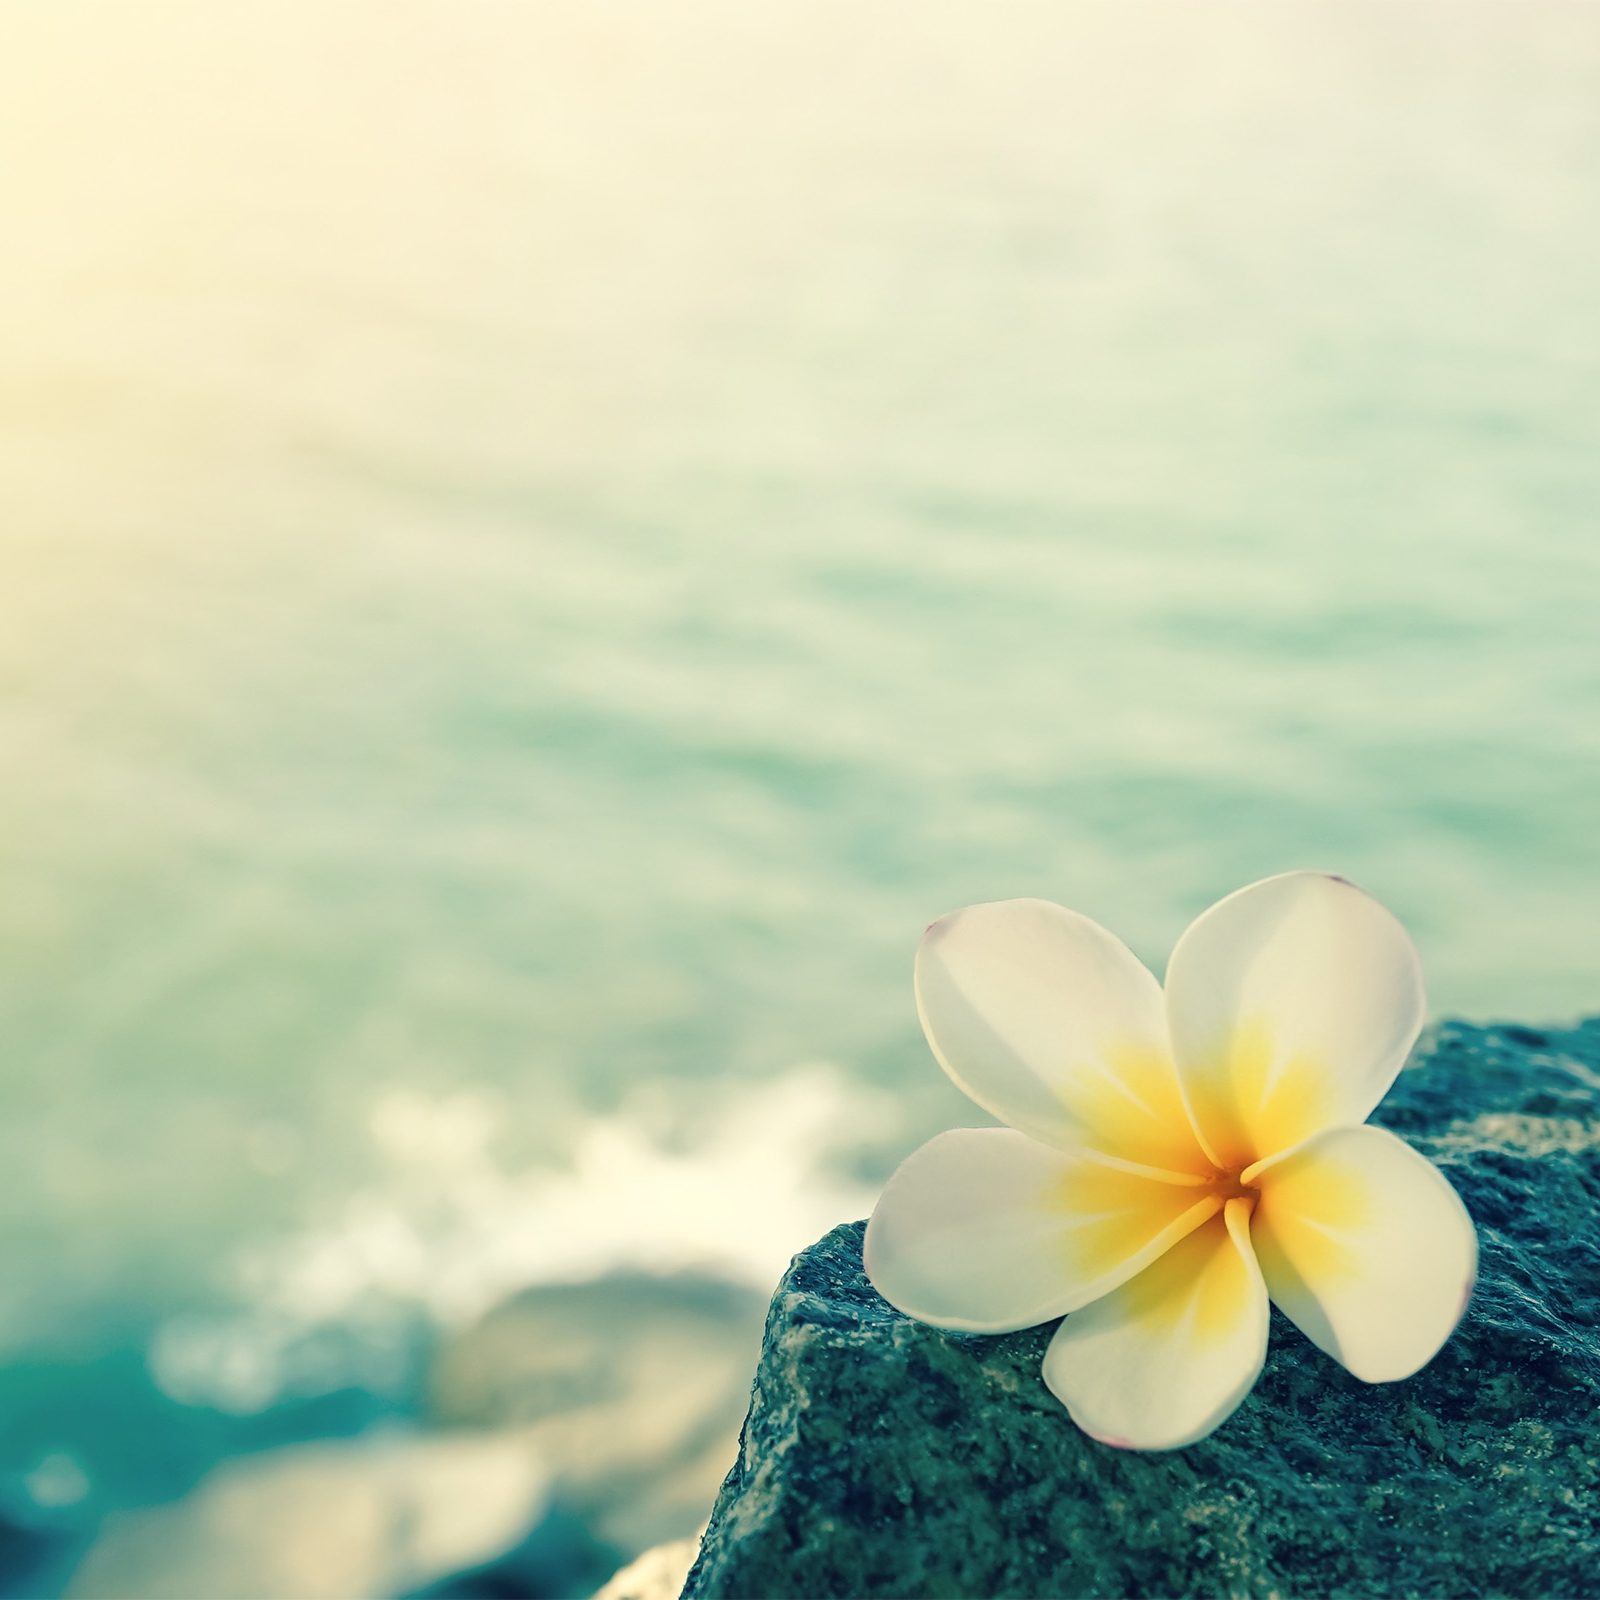 White frangipani on the rock at the beach%0D%0A-1.jpg